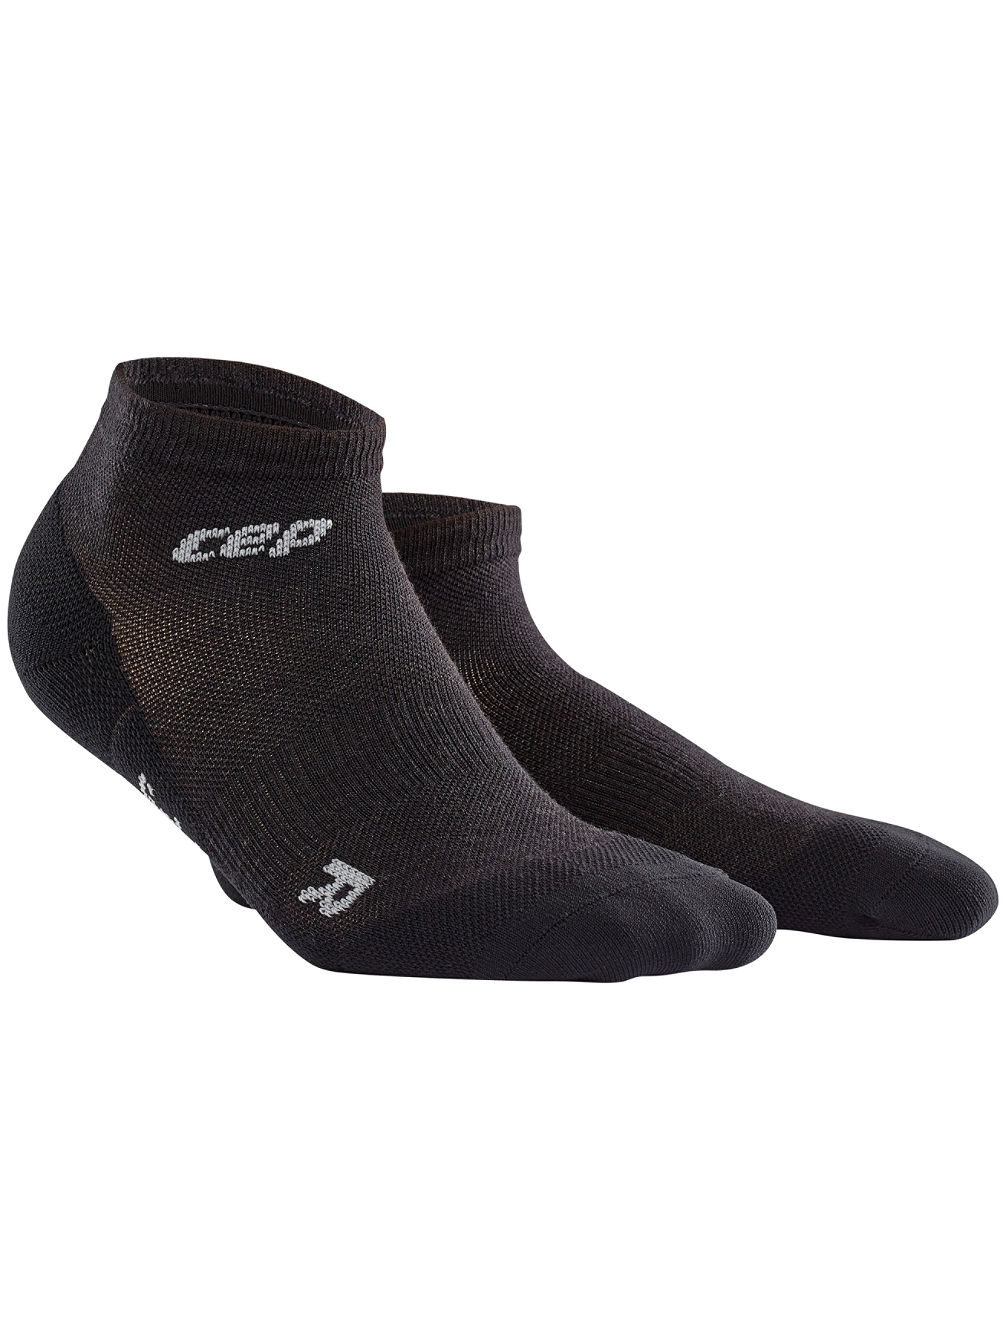 Light Merino Low Cut Socks